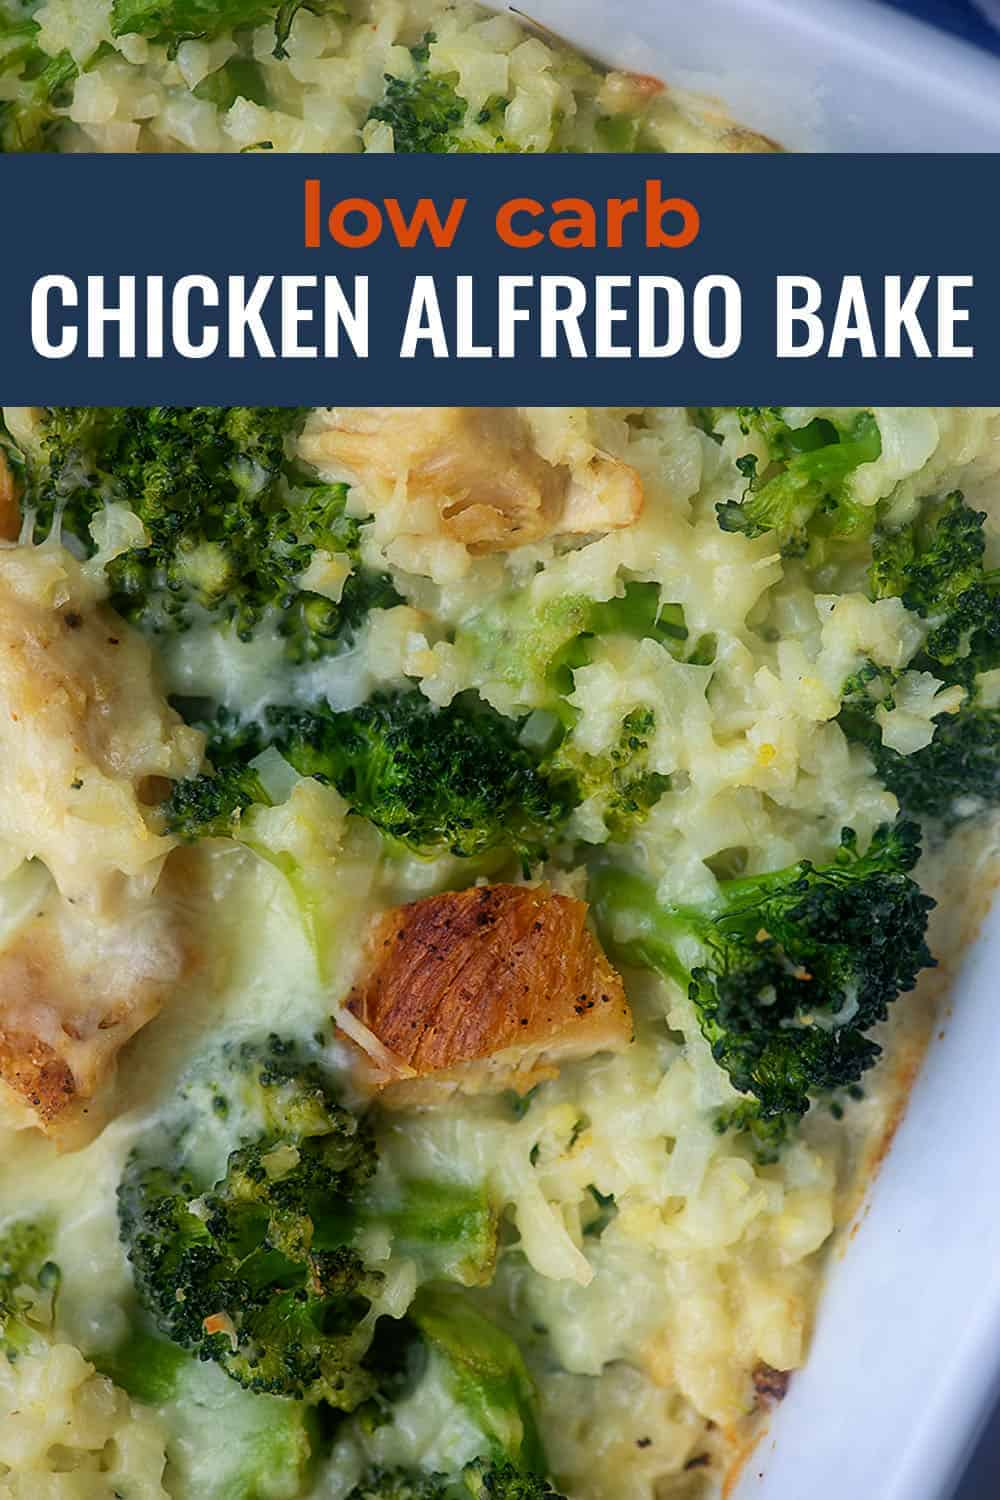 Low Carb Chicken Broccoli Alfredo Bake! This casserole is packed with veggies and Alfredo sauce...so easy too! #lowcarb #keto #chicken #casserole